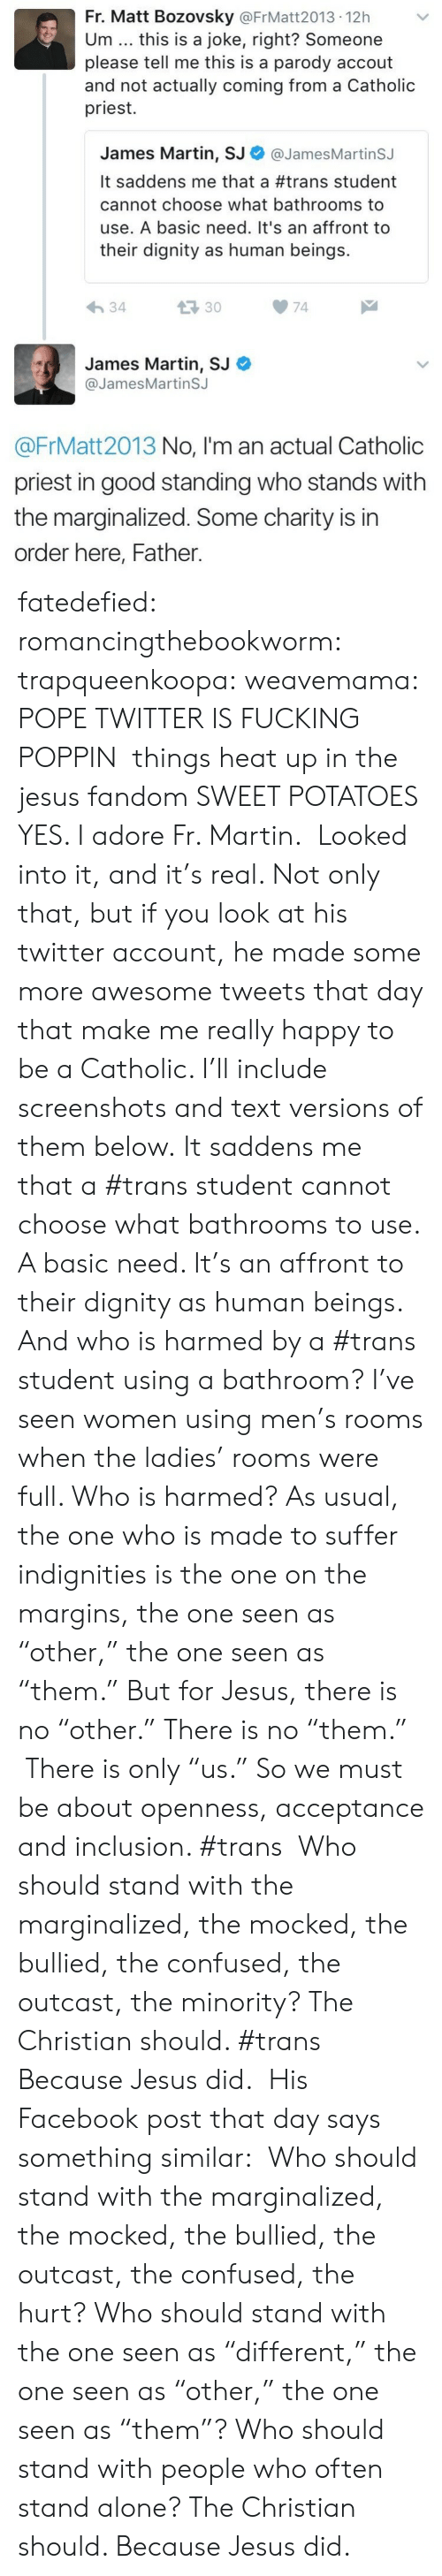 """inclusion: Fr. Matt Bozovsky @FrMatt2013 12h  Um this is a joke, right? Someone  please tell me this is a parody accout  and not actually coming from a Catholic  priest.  James Martin, SJ Φ @JamesMartinSJ  It saddens me that a #trans student  cannot choose what bathrooms to  use. A basic need. It's an affront to  their dignity as human beings.  34  133074  James Martin, SJ  @JamesMartinSJ  @FrMatt2013 No, I'm an actual Catholic  priest in good standing who stands with  the marginalized. Some charity is in  order here, Father. fatedefied: romancingthebookworm:  trapqueenkoopa:  weavemama: POPE TWITTER IS FUCKING POPPIN things heat up in the jesus fandom  SWEET POTATOES YES. I adore Fr. Martin.  Looked into it, and it's real. Not only that, but if you look at his twitter account, he made some more awesome tweets that day that make me really happy to be a Catholic. I'll include screenshots and text versions of them below. It saddens me that a #trans student cannot choose what bathrooms to use. A basic need. It's an affront to their dignity as human beings. And who is harmed by a #trans student using a bathroom? I've seen women using men's rooms when the ladies' rooms were full. Who is harmed? As usual, the one who is made to suffer indignities is the one on the margins, the one seen as """"other,"""" the one seen as """"them."""" But for Jesus, there is no """"other."""" There is no """"them."""" There is only """"us."""" So we must be about openness, acceptance and inclusion. #trans   Who should stand with the marginalized, the mocked, the bullied, the confused, the outcast, the minority? The Christian should. #trans     Because Jesus did. His Facebook post that day says something similar:  Who should stand with the marginalized, the mocked, the bullied, the outcast, the confused, the hurt? Who should stand with the one seen as """"different,"""" the one seen as """"other,"""" the one seen as """"them""""? Who should stand with people who often stand alone? The Christian should. Because Jesus did."""